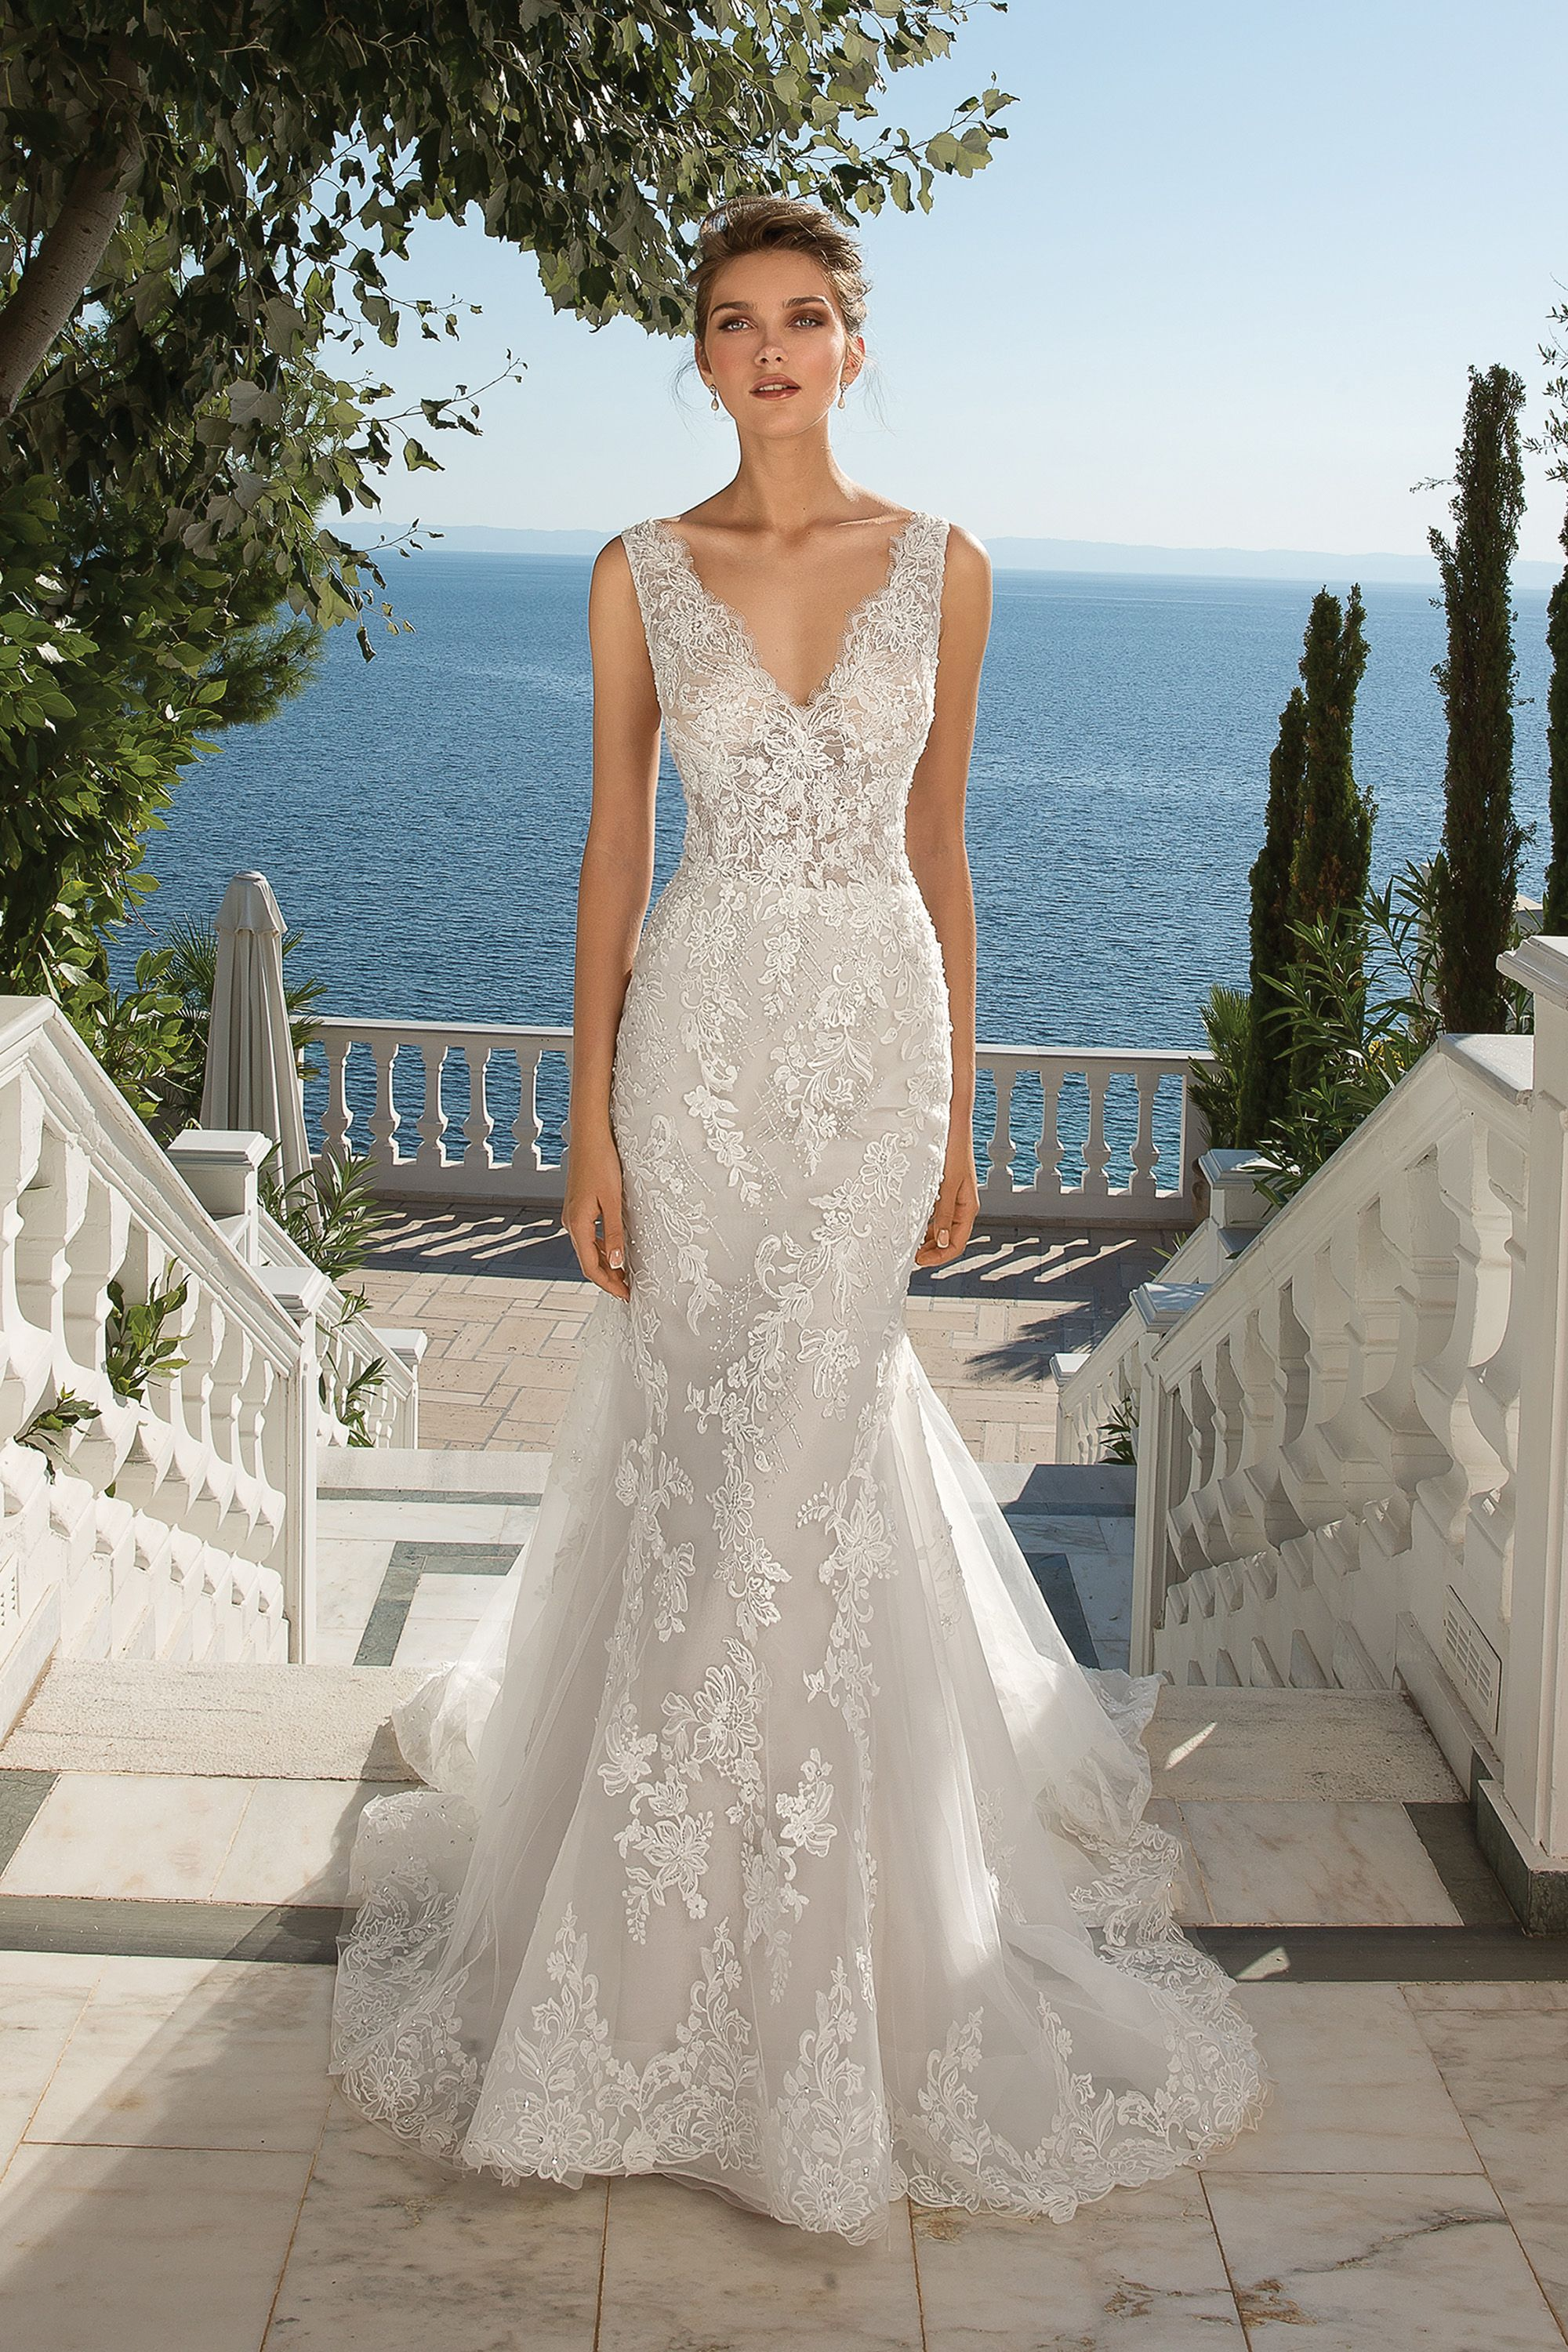 Style 88077 Fit And Flare Lace Dress With Illusion V Neckline Justin Alexander Justin Alexander Wedding Dress Justin Alexander Bridal Fitted Wedding Dress